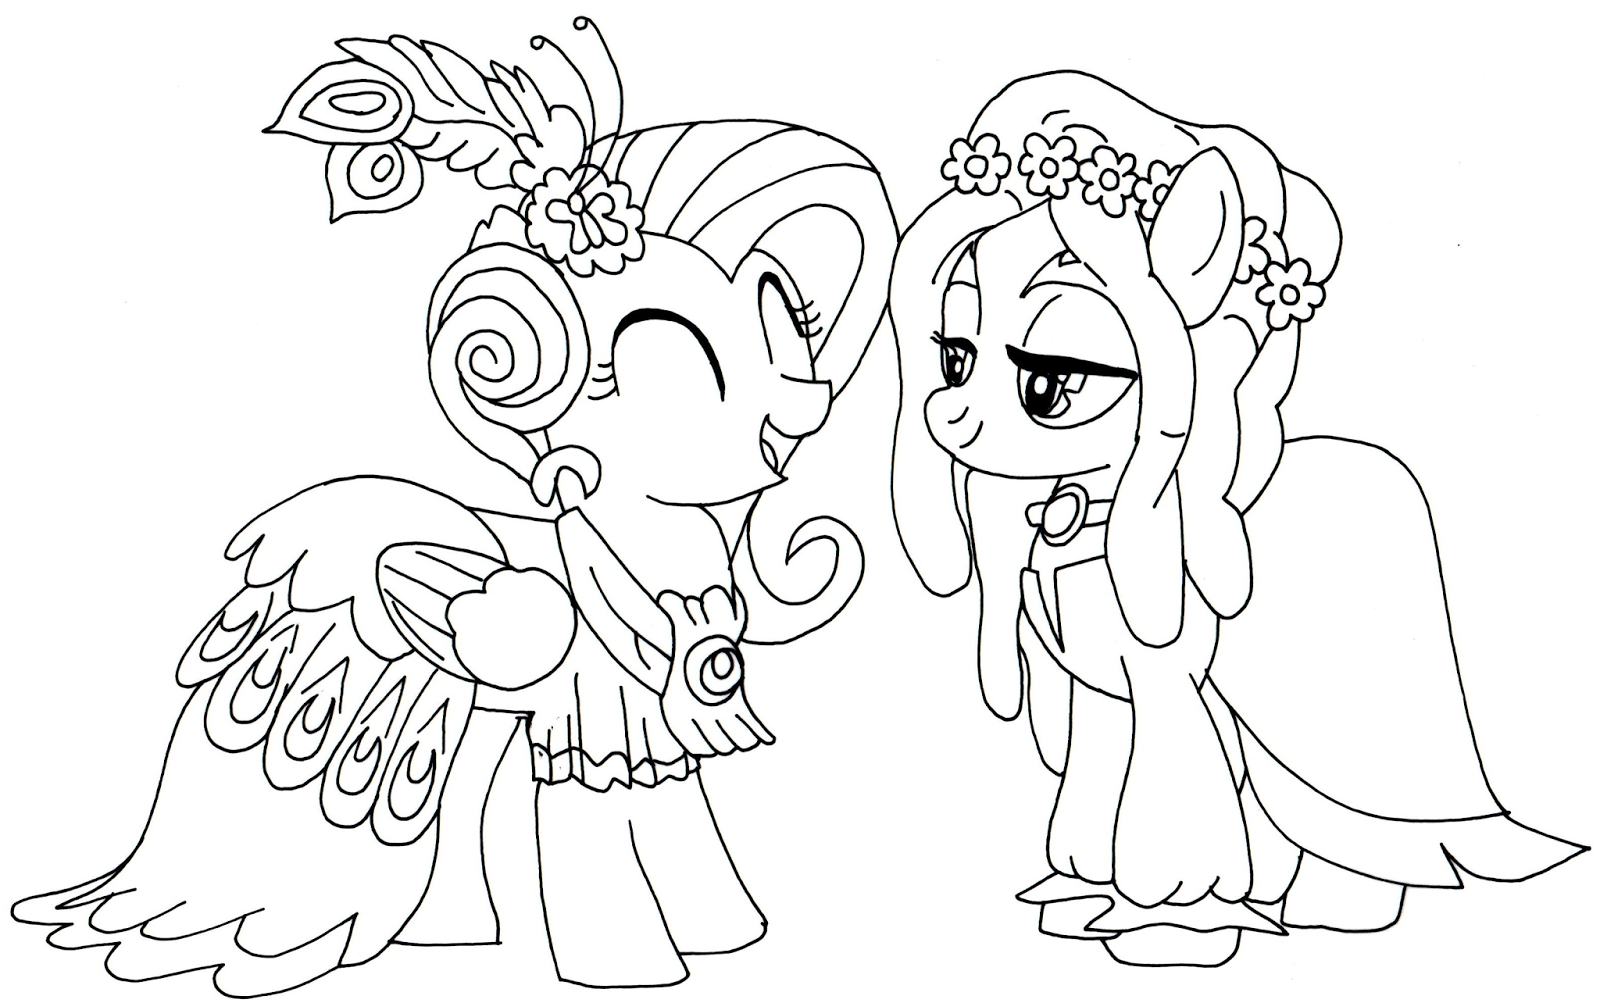 Coloring Pages My Little Pony Printable : Free printable my little pony coloring pages january